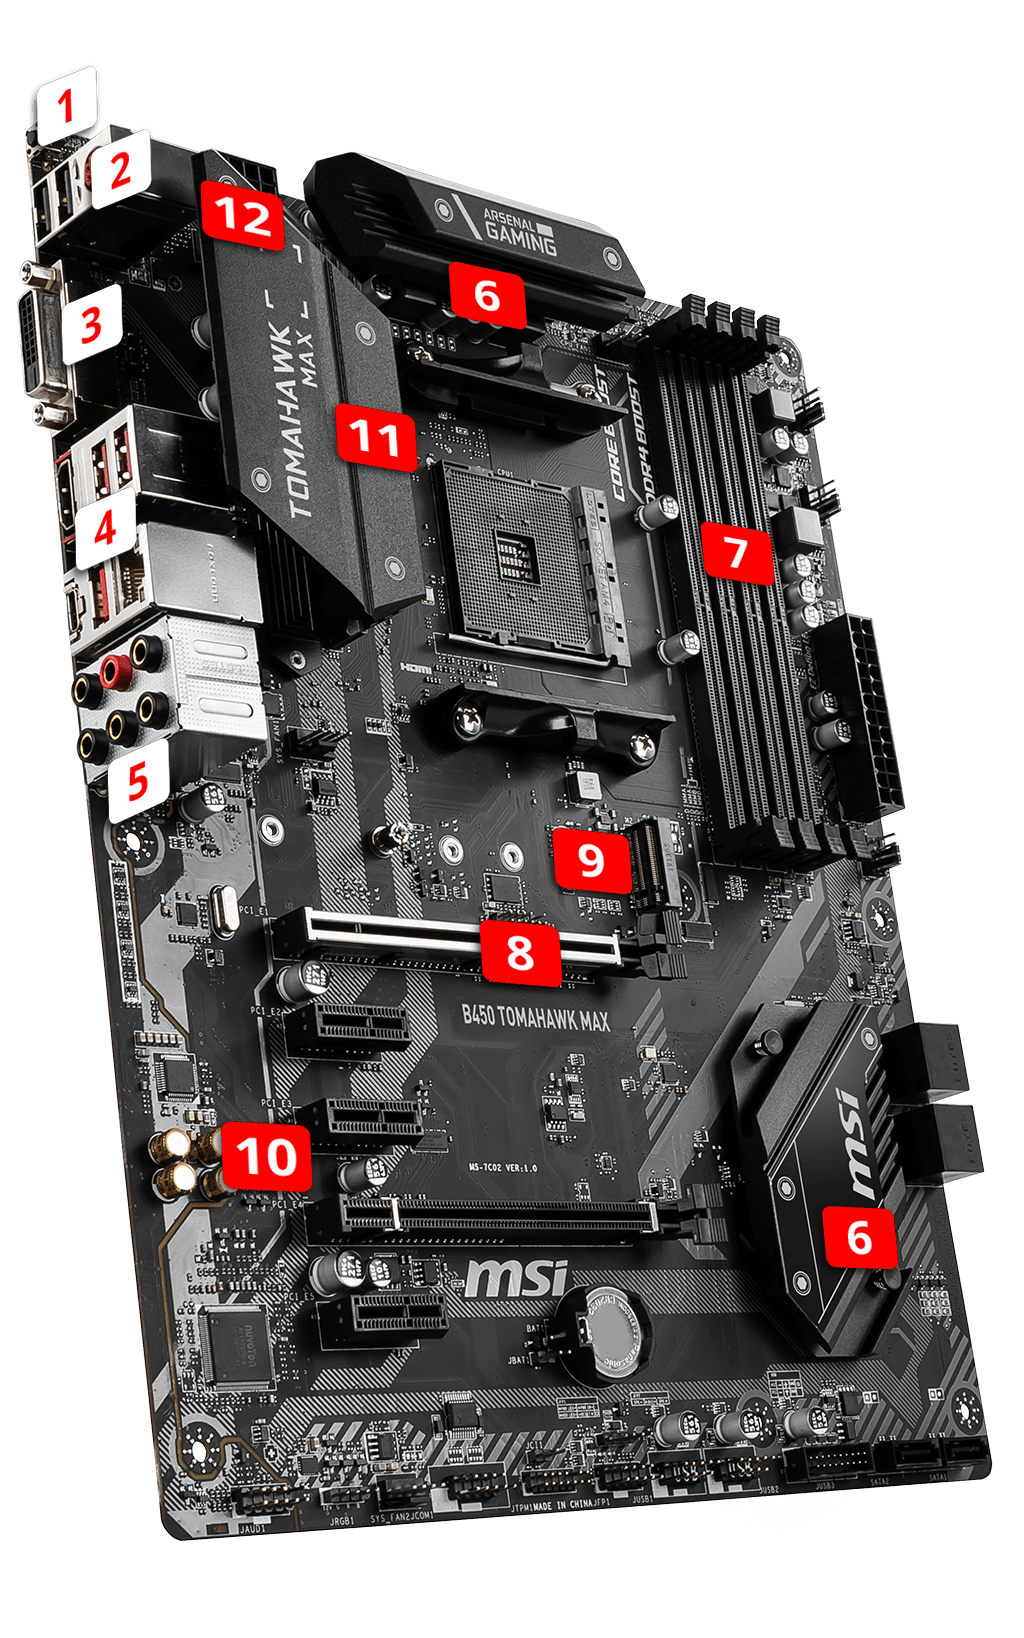 MSI B450 TOMAHAWK MAX overview